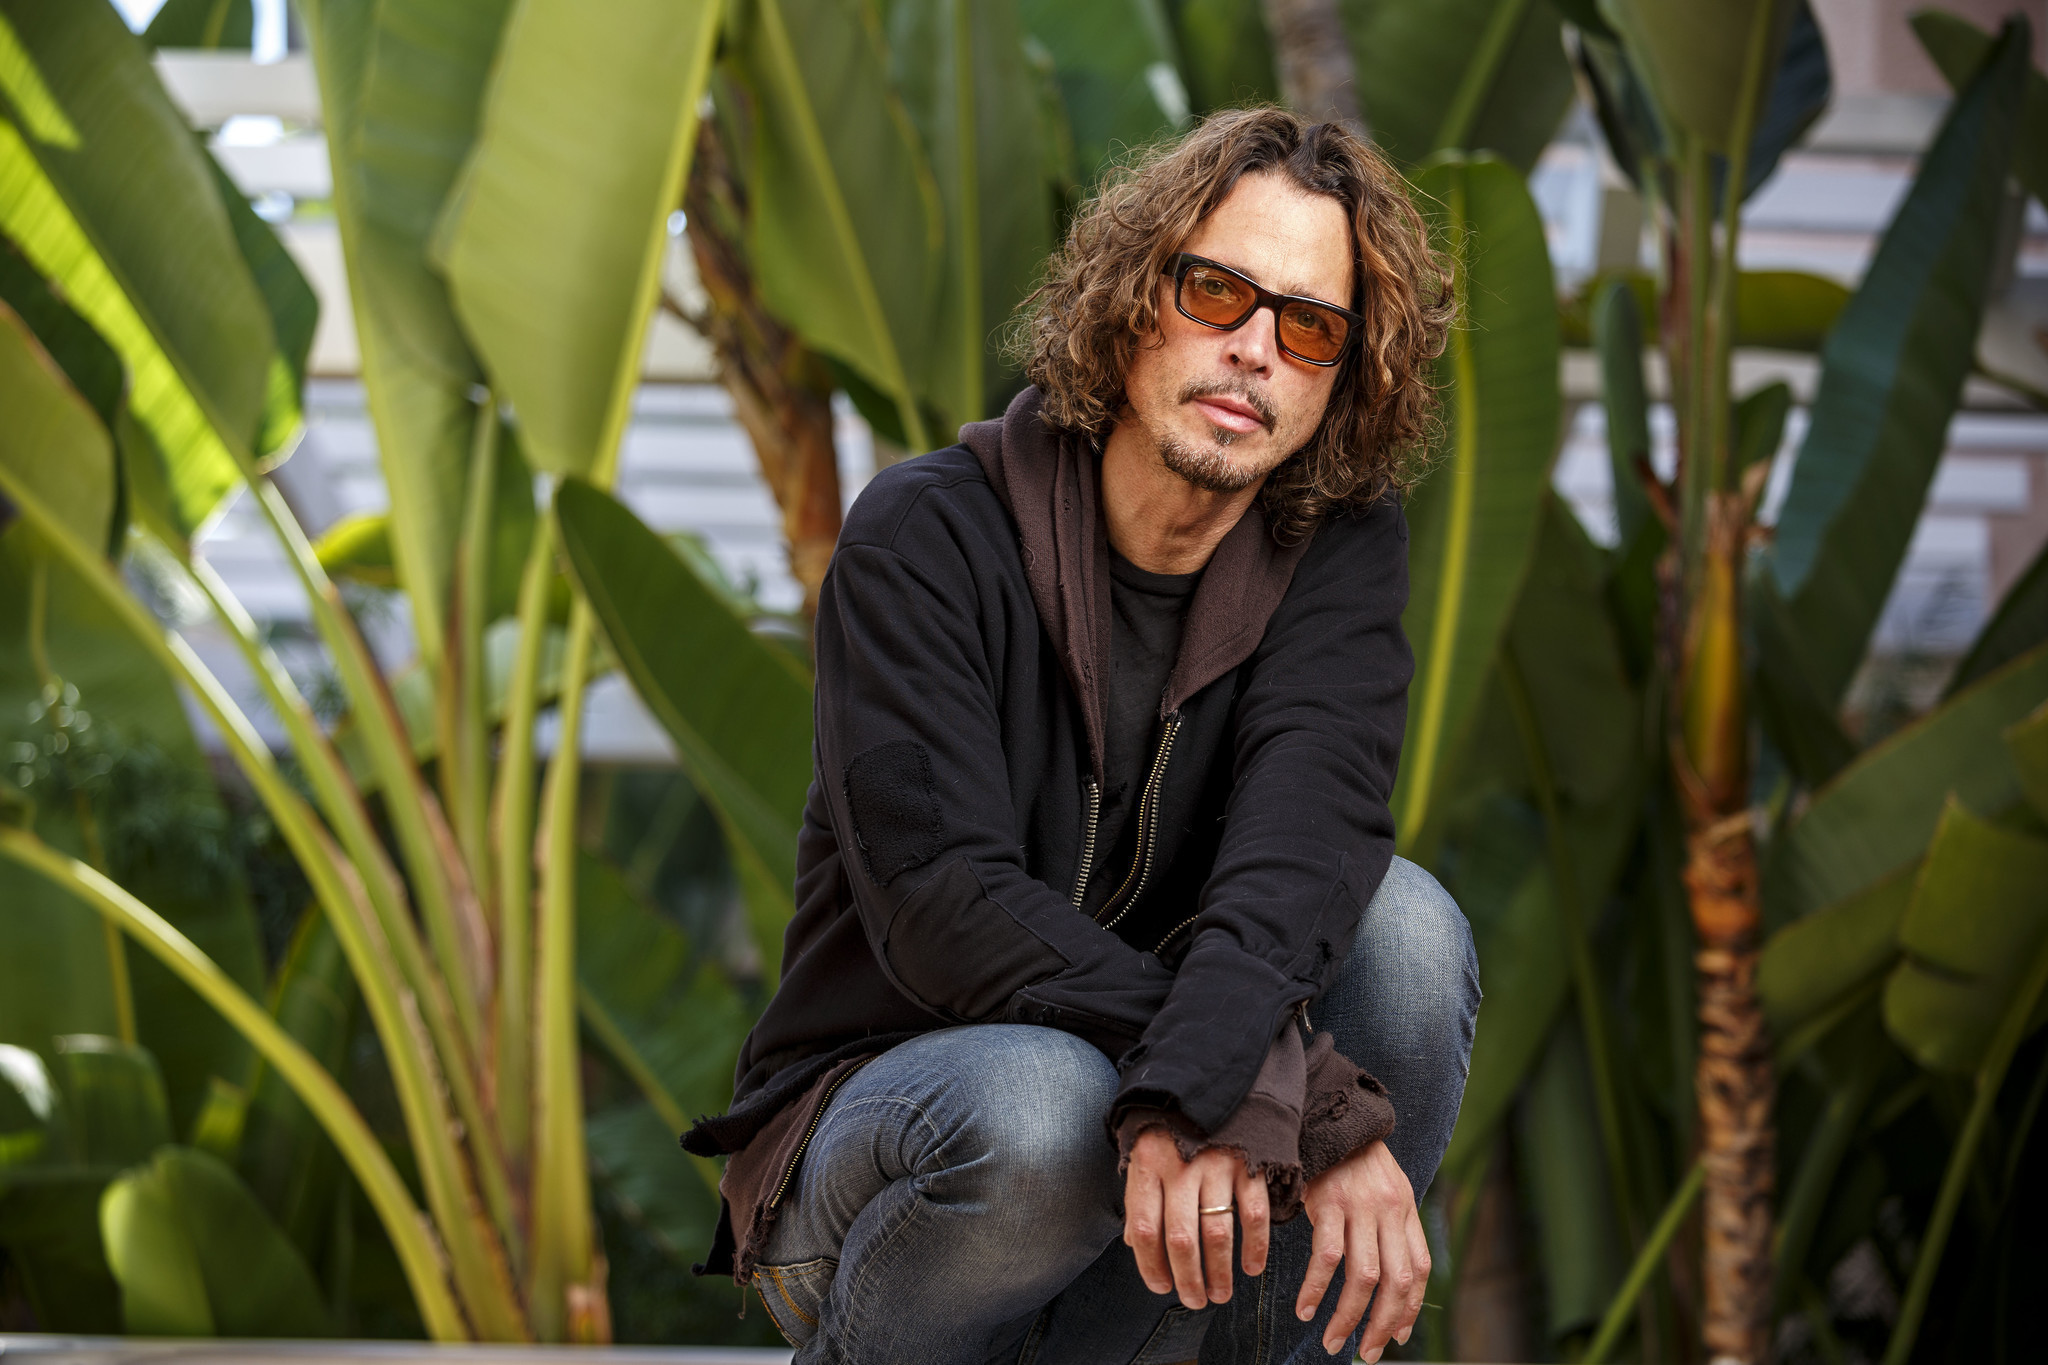 Chris Cornell: Chris Cornell, Who Helped Reignite Hard Rock In The 1990s